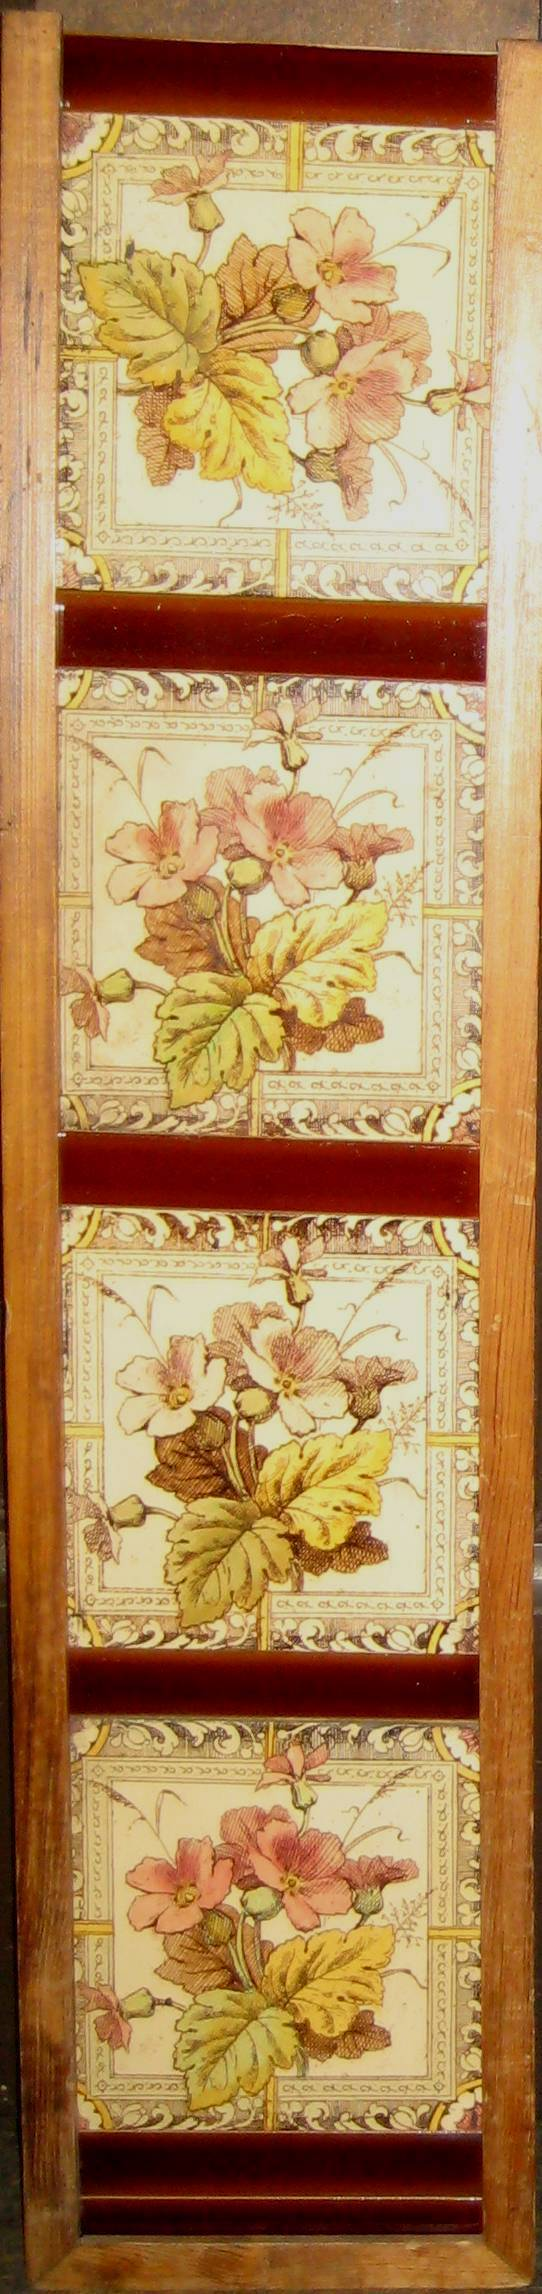 Antique Leaf Tile Set